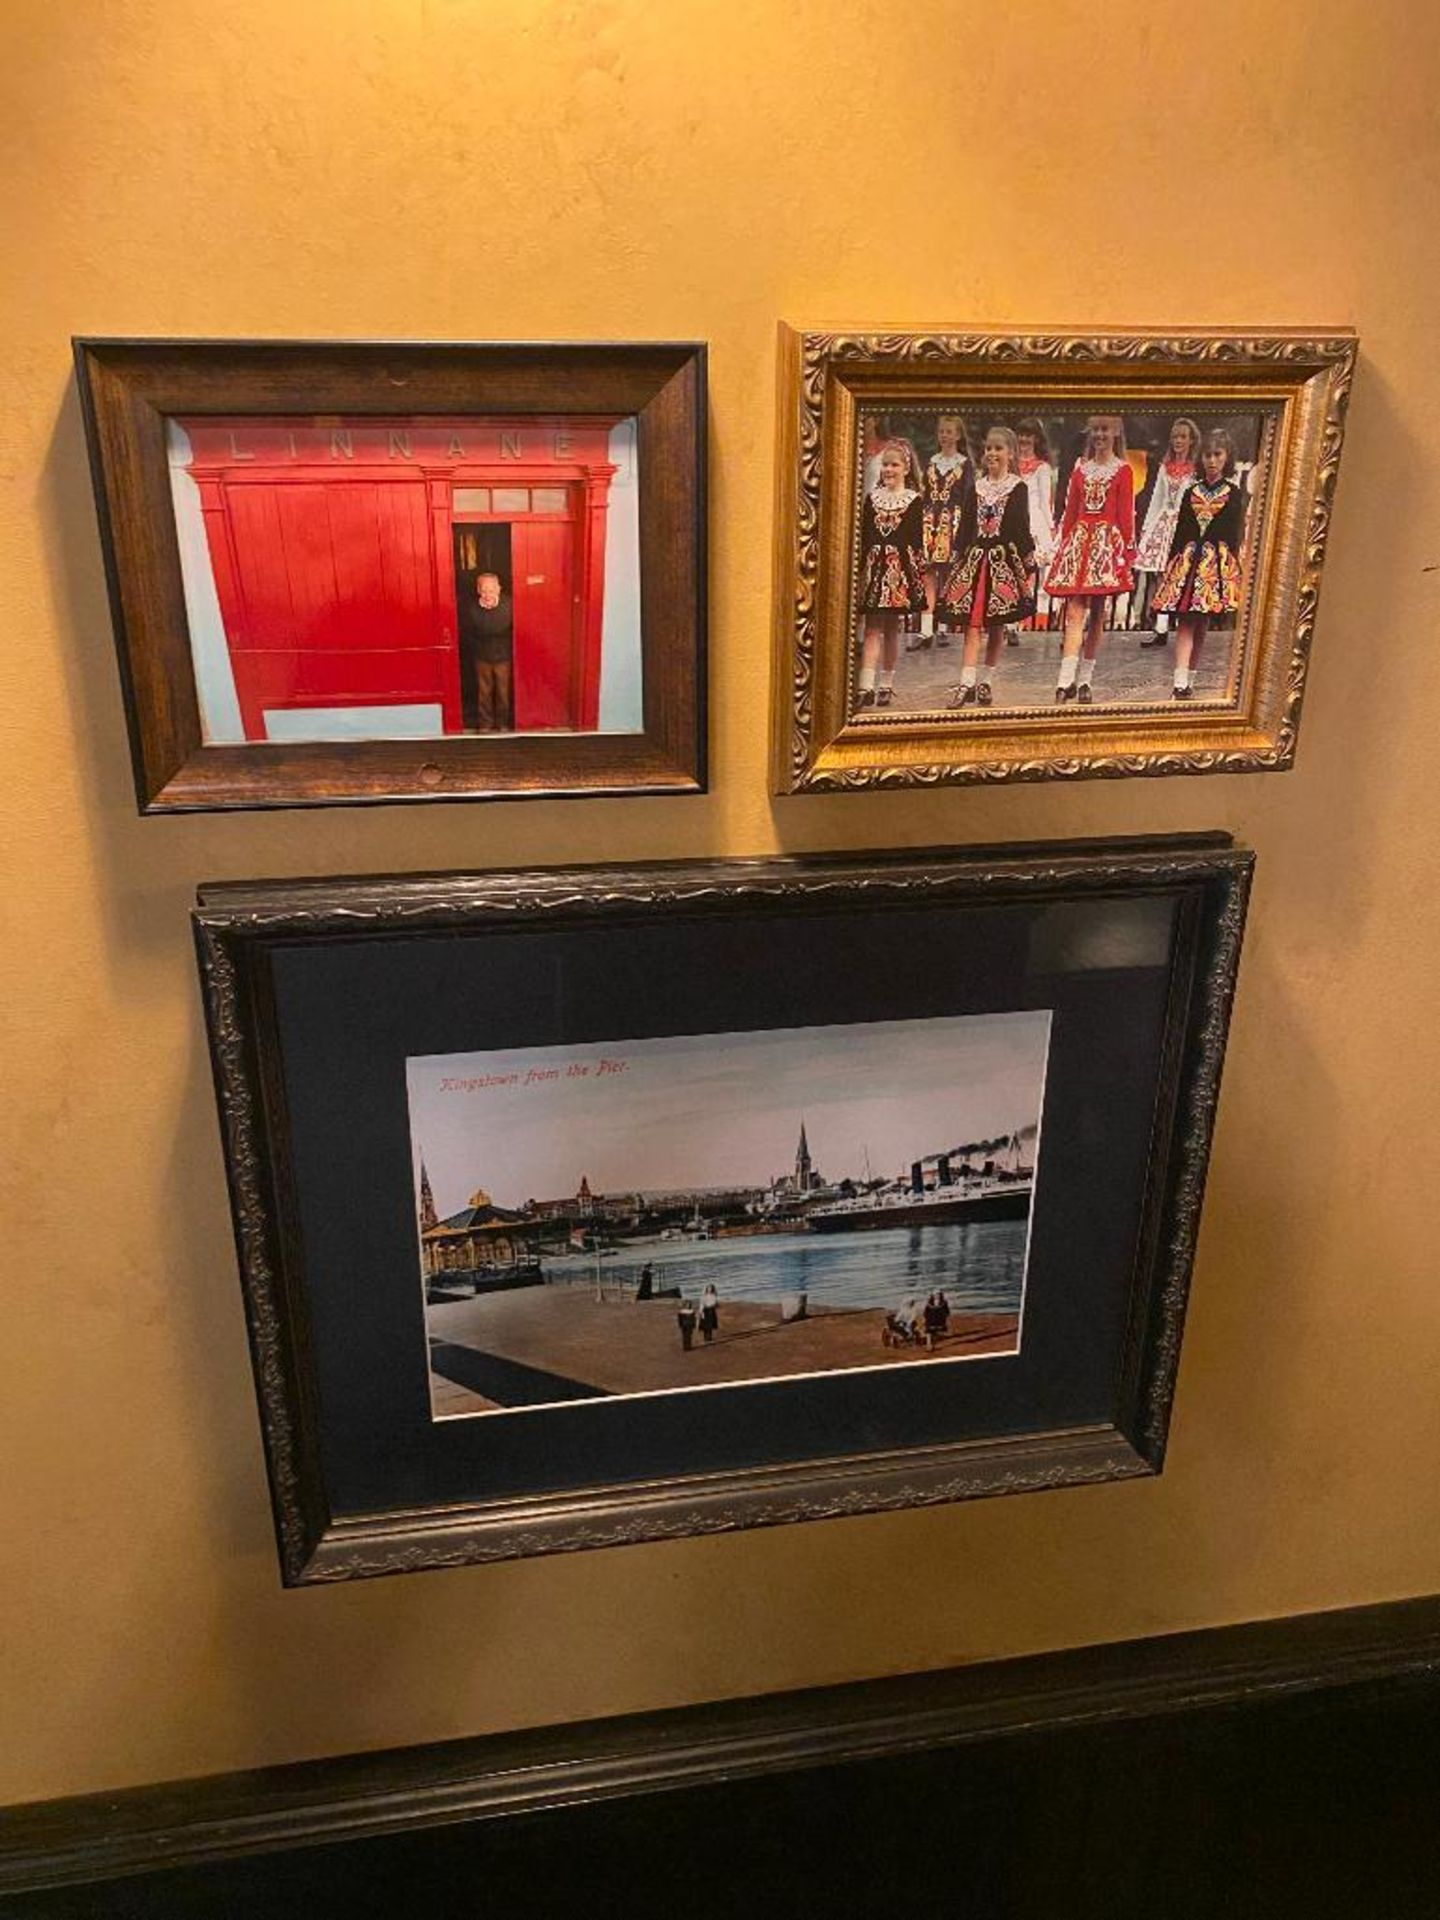 LOT OF (7) FRAMED MEMORABILIA PHOTOS & (1) WALL SHELF WITH ASSORTED DECORATIVE ITEMS - NOTE: REQUIRE - Image 4 of 7